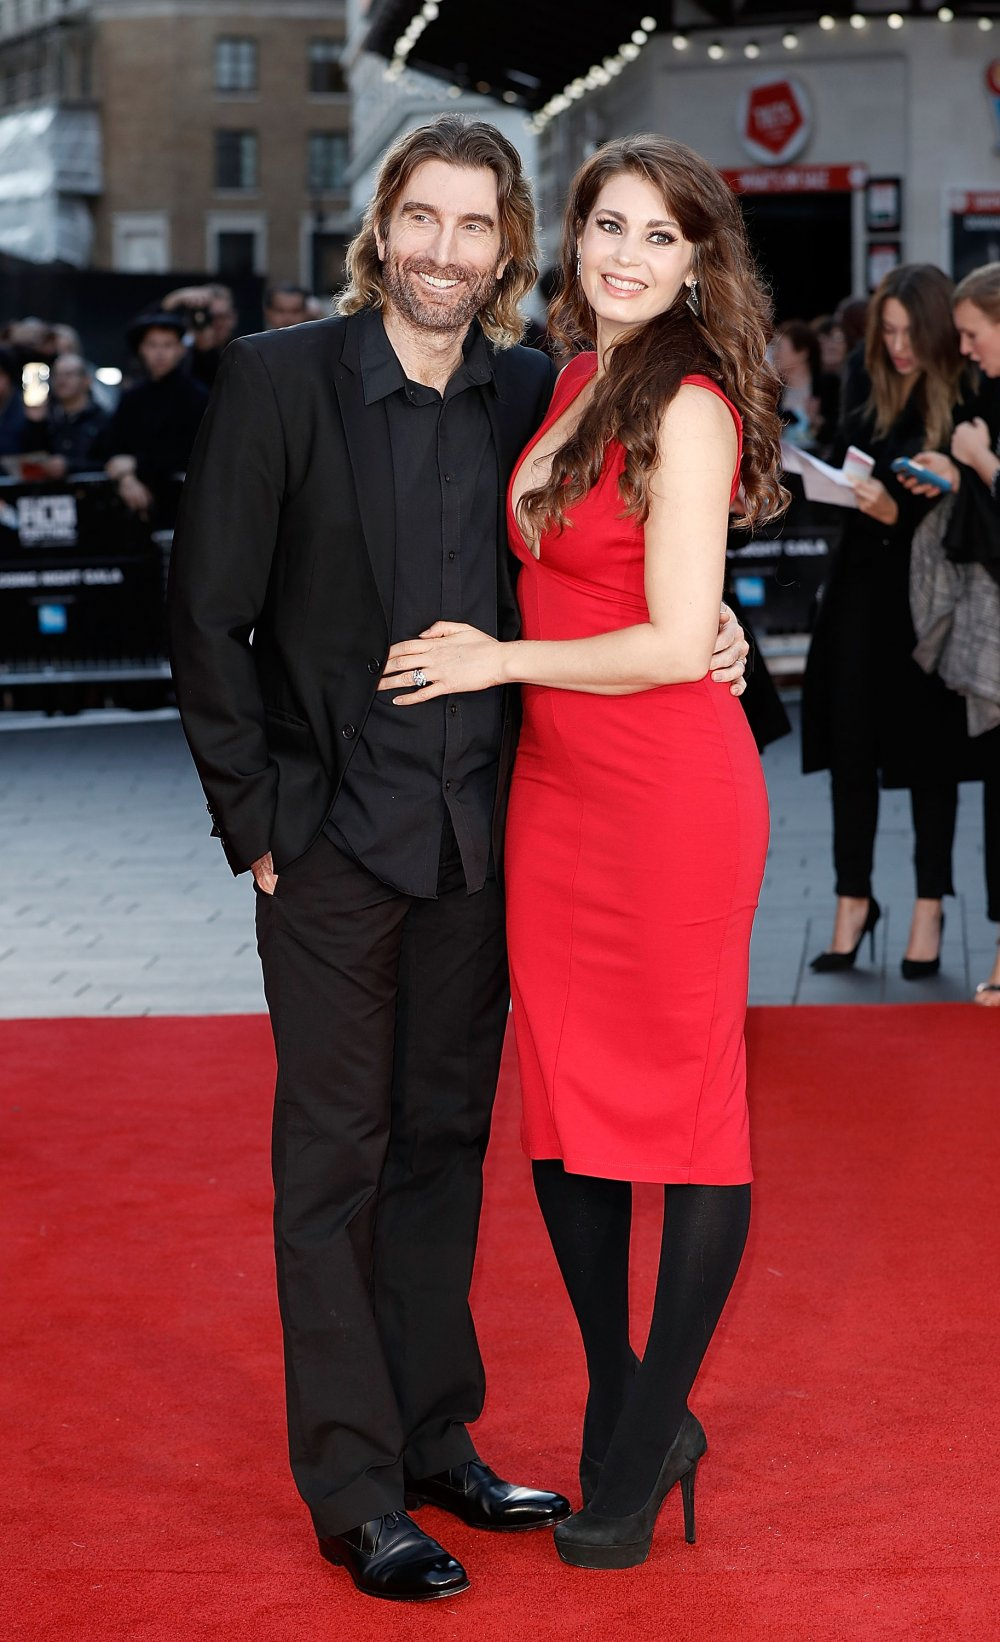 Sharlto Copley and Tanit Phoenix attend the Free Fire Closing Night Gala screening during the 60th BFI London Film Festival